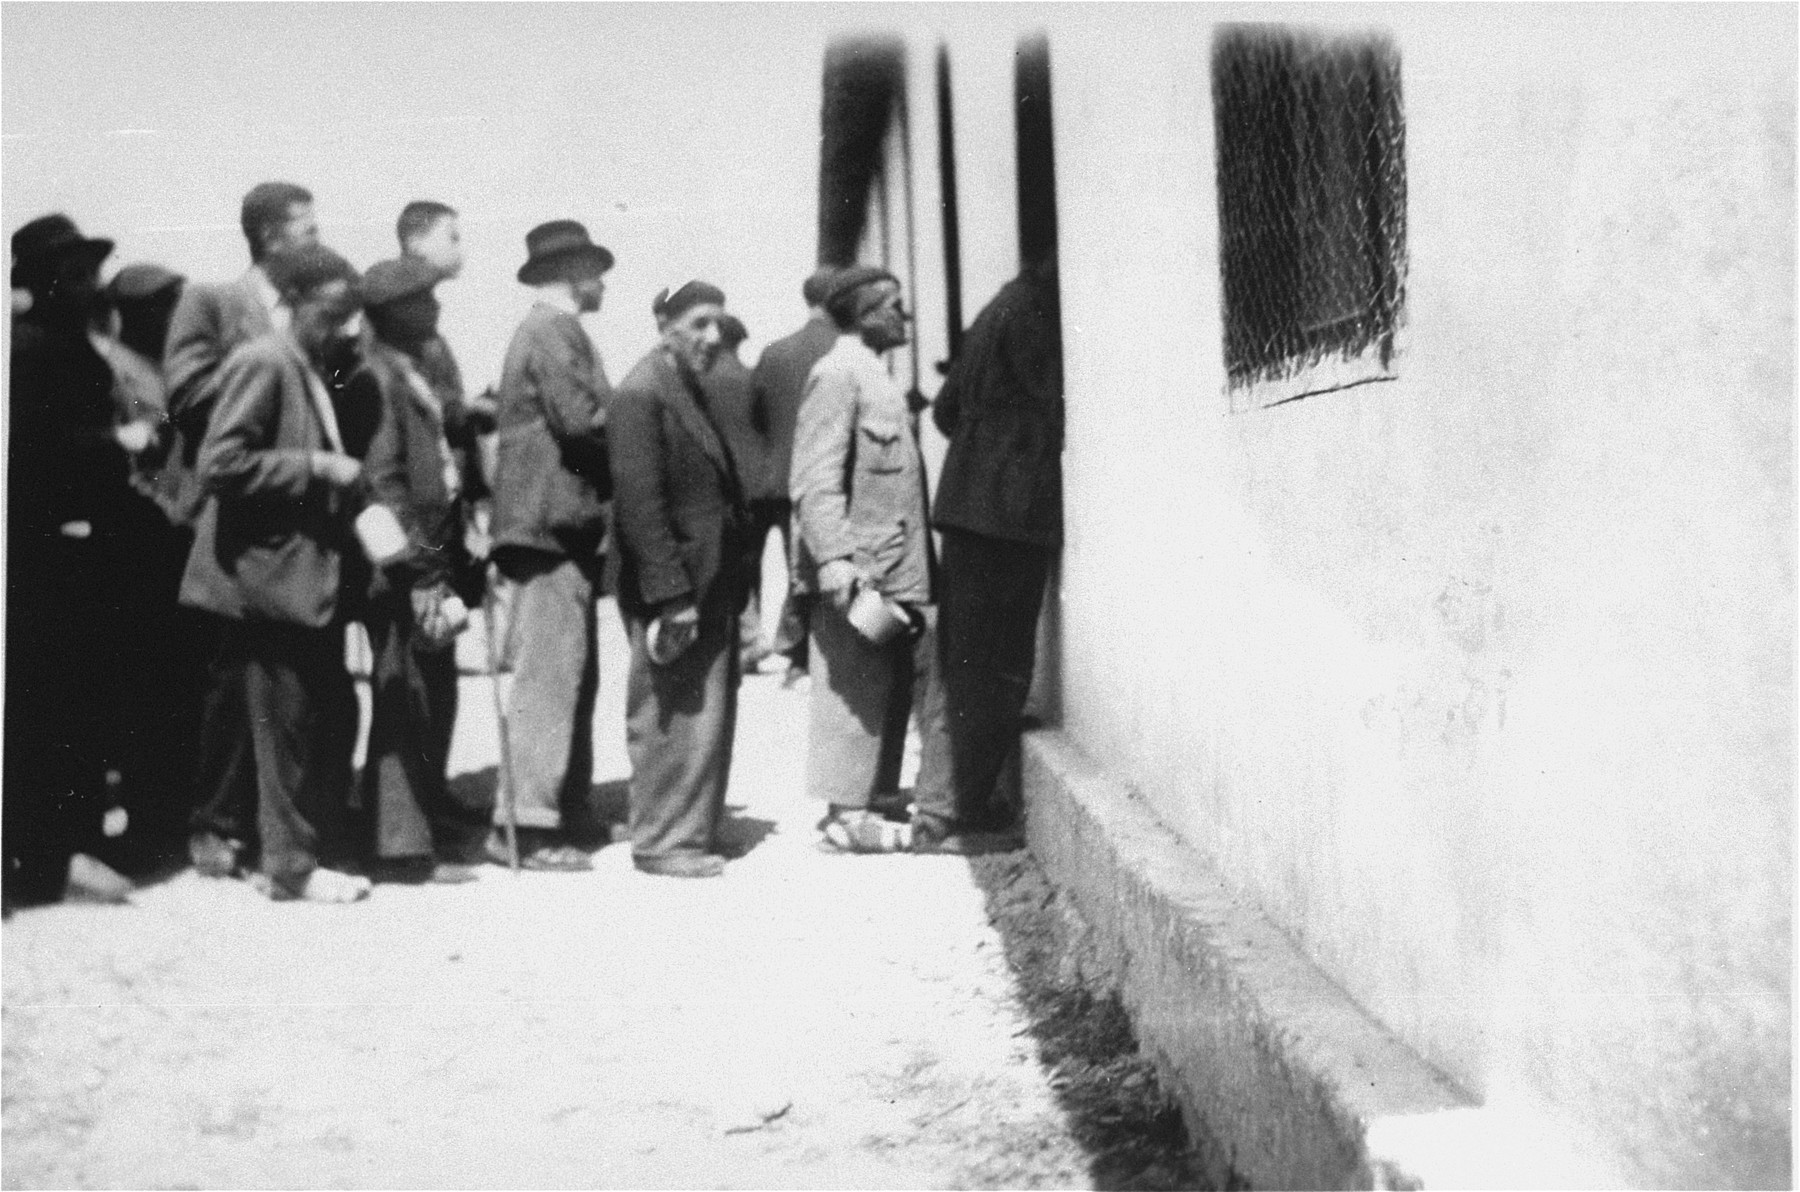 Prisoners in Rivesaltes on line for rations.